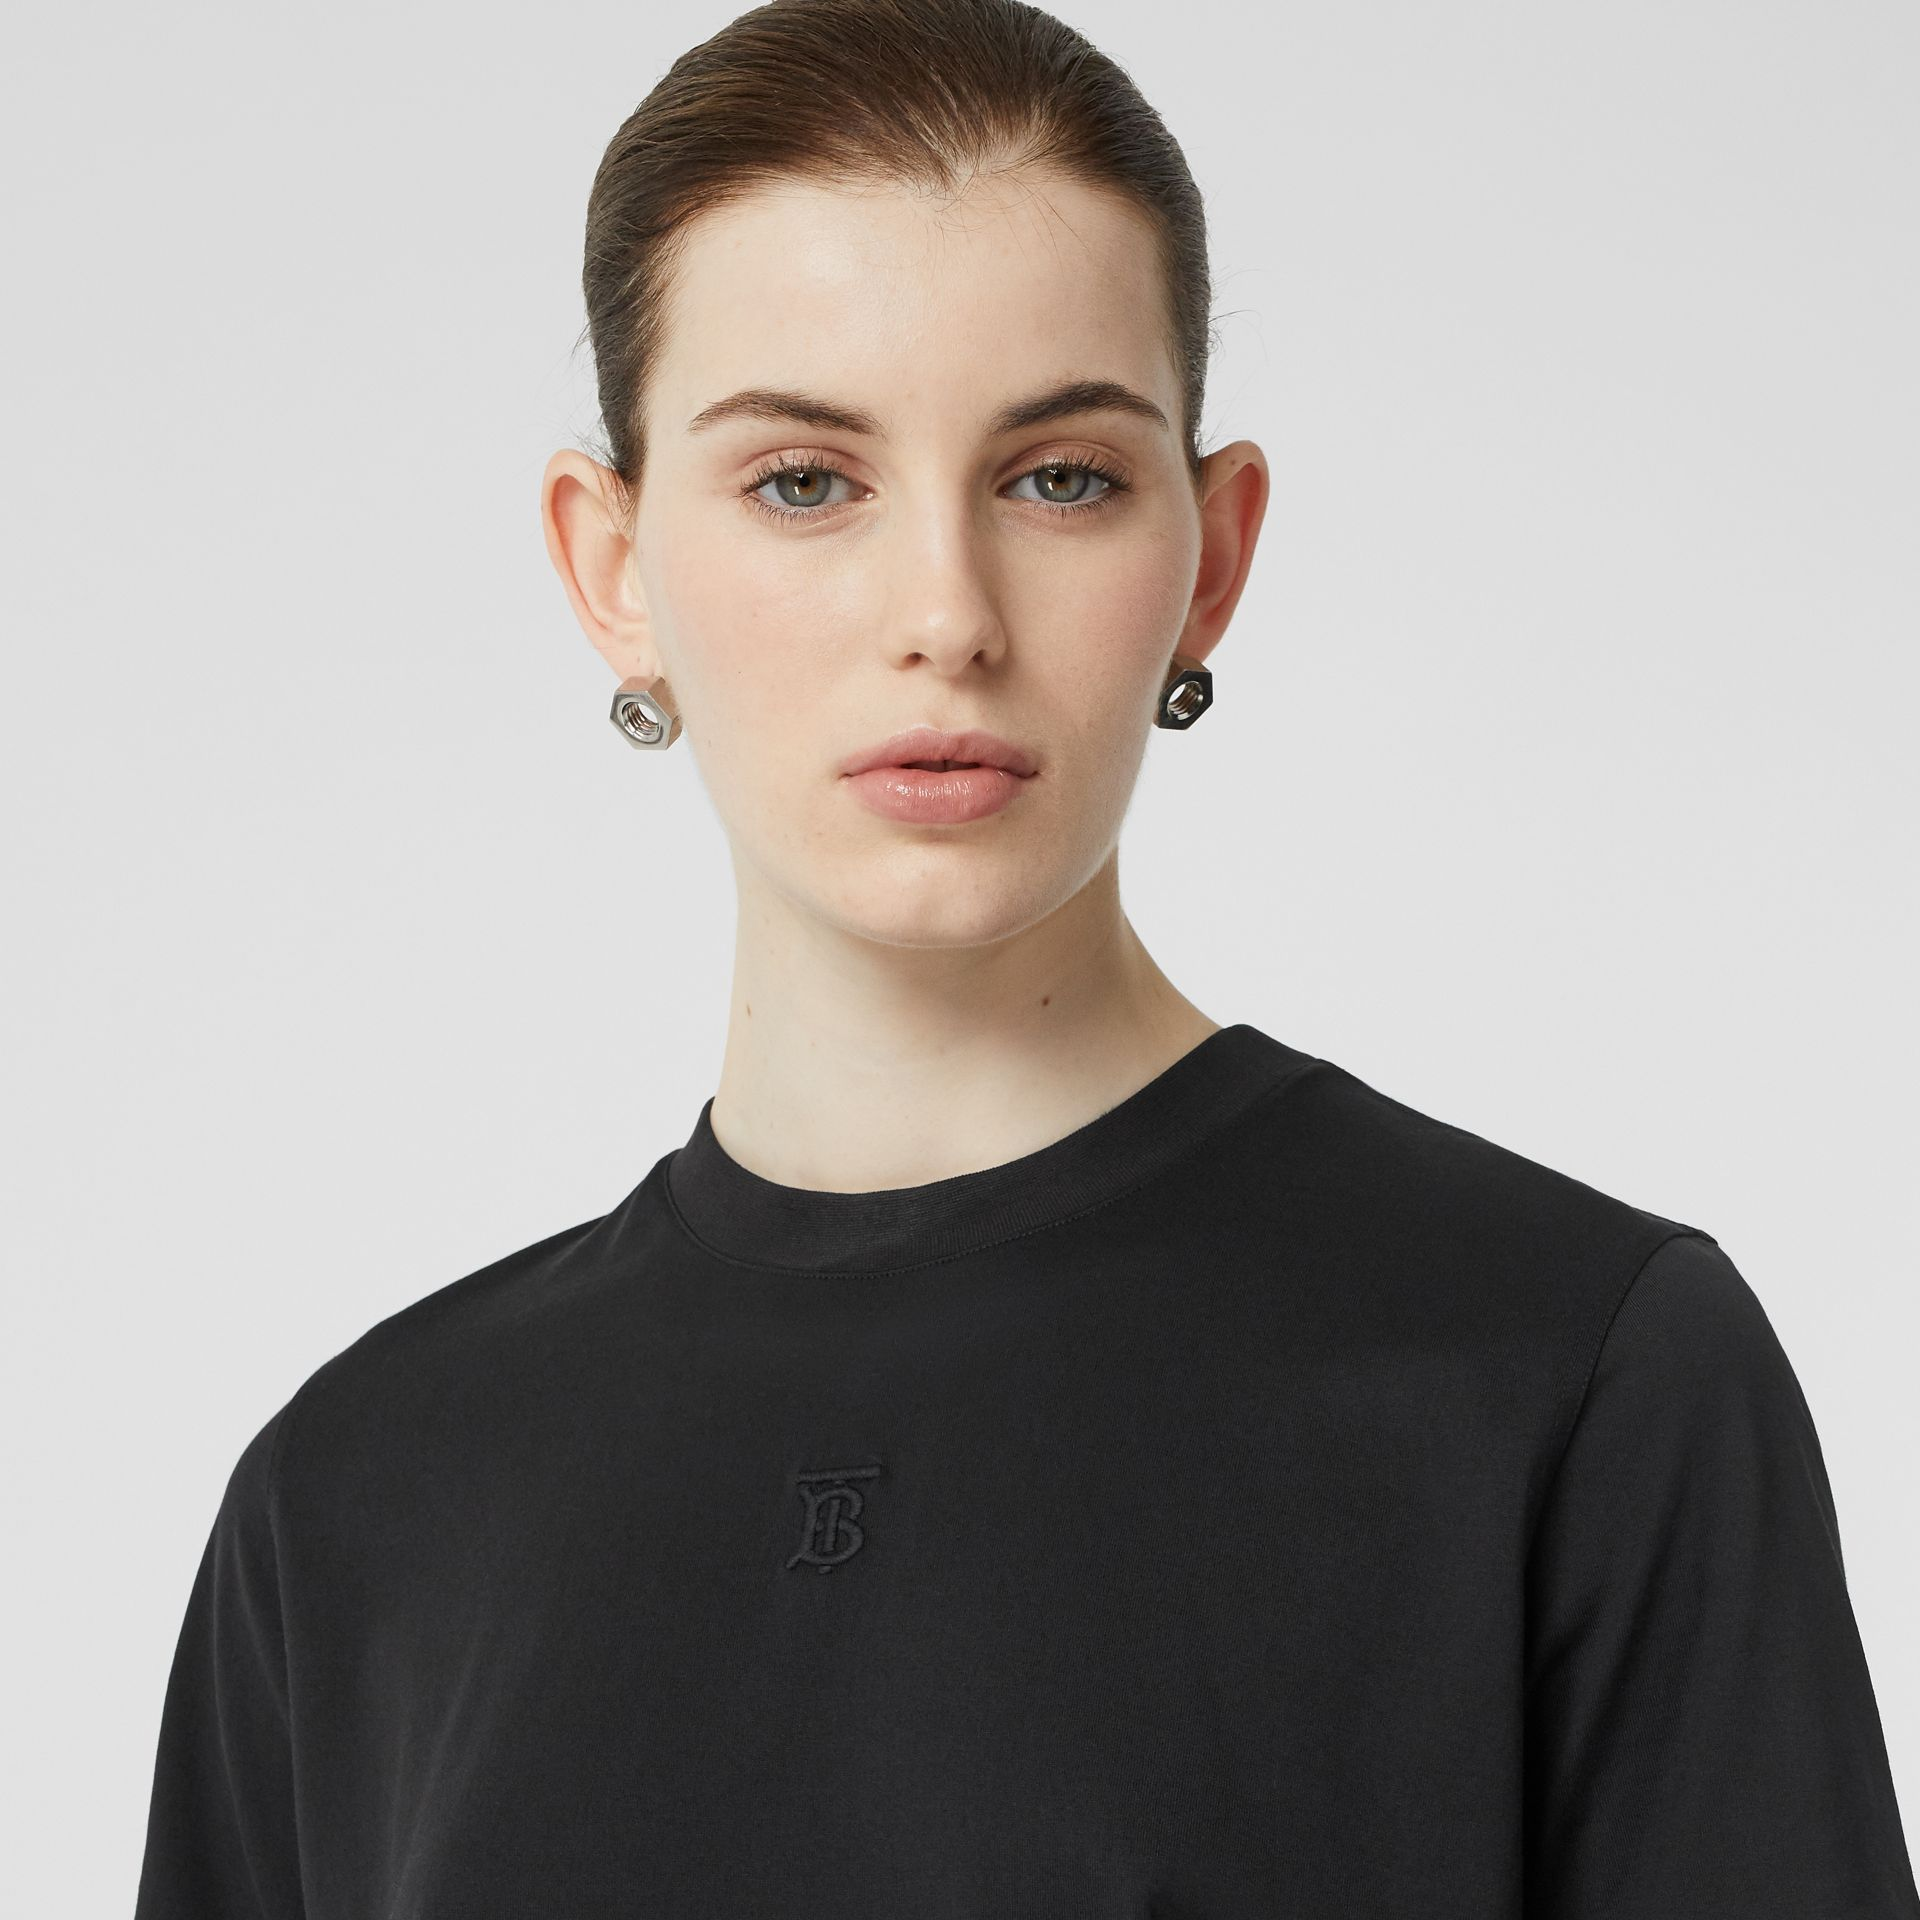 Monogram Motif Cotton T-shirt in Black - Women | Burberry United Kingdom - gallery image 1